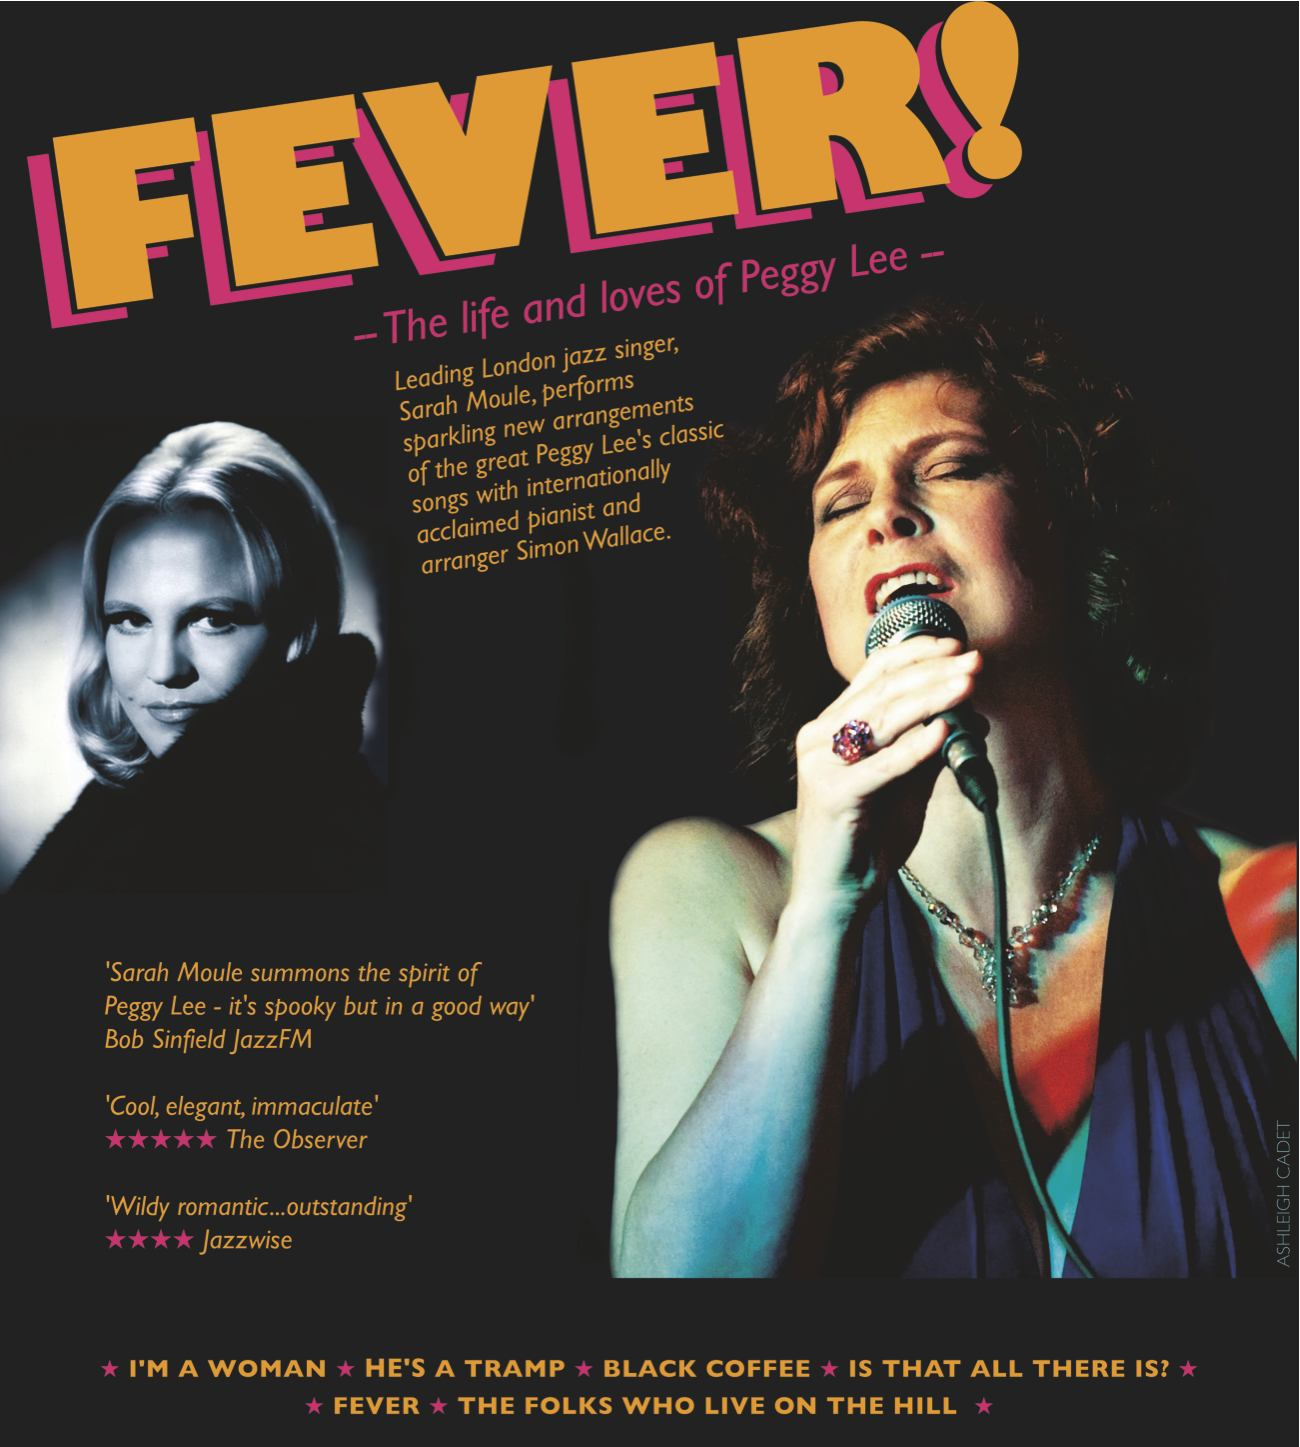 Fever! image only